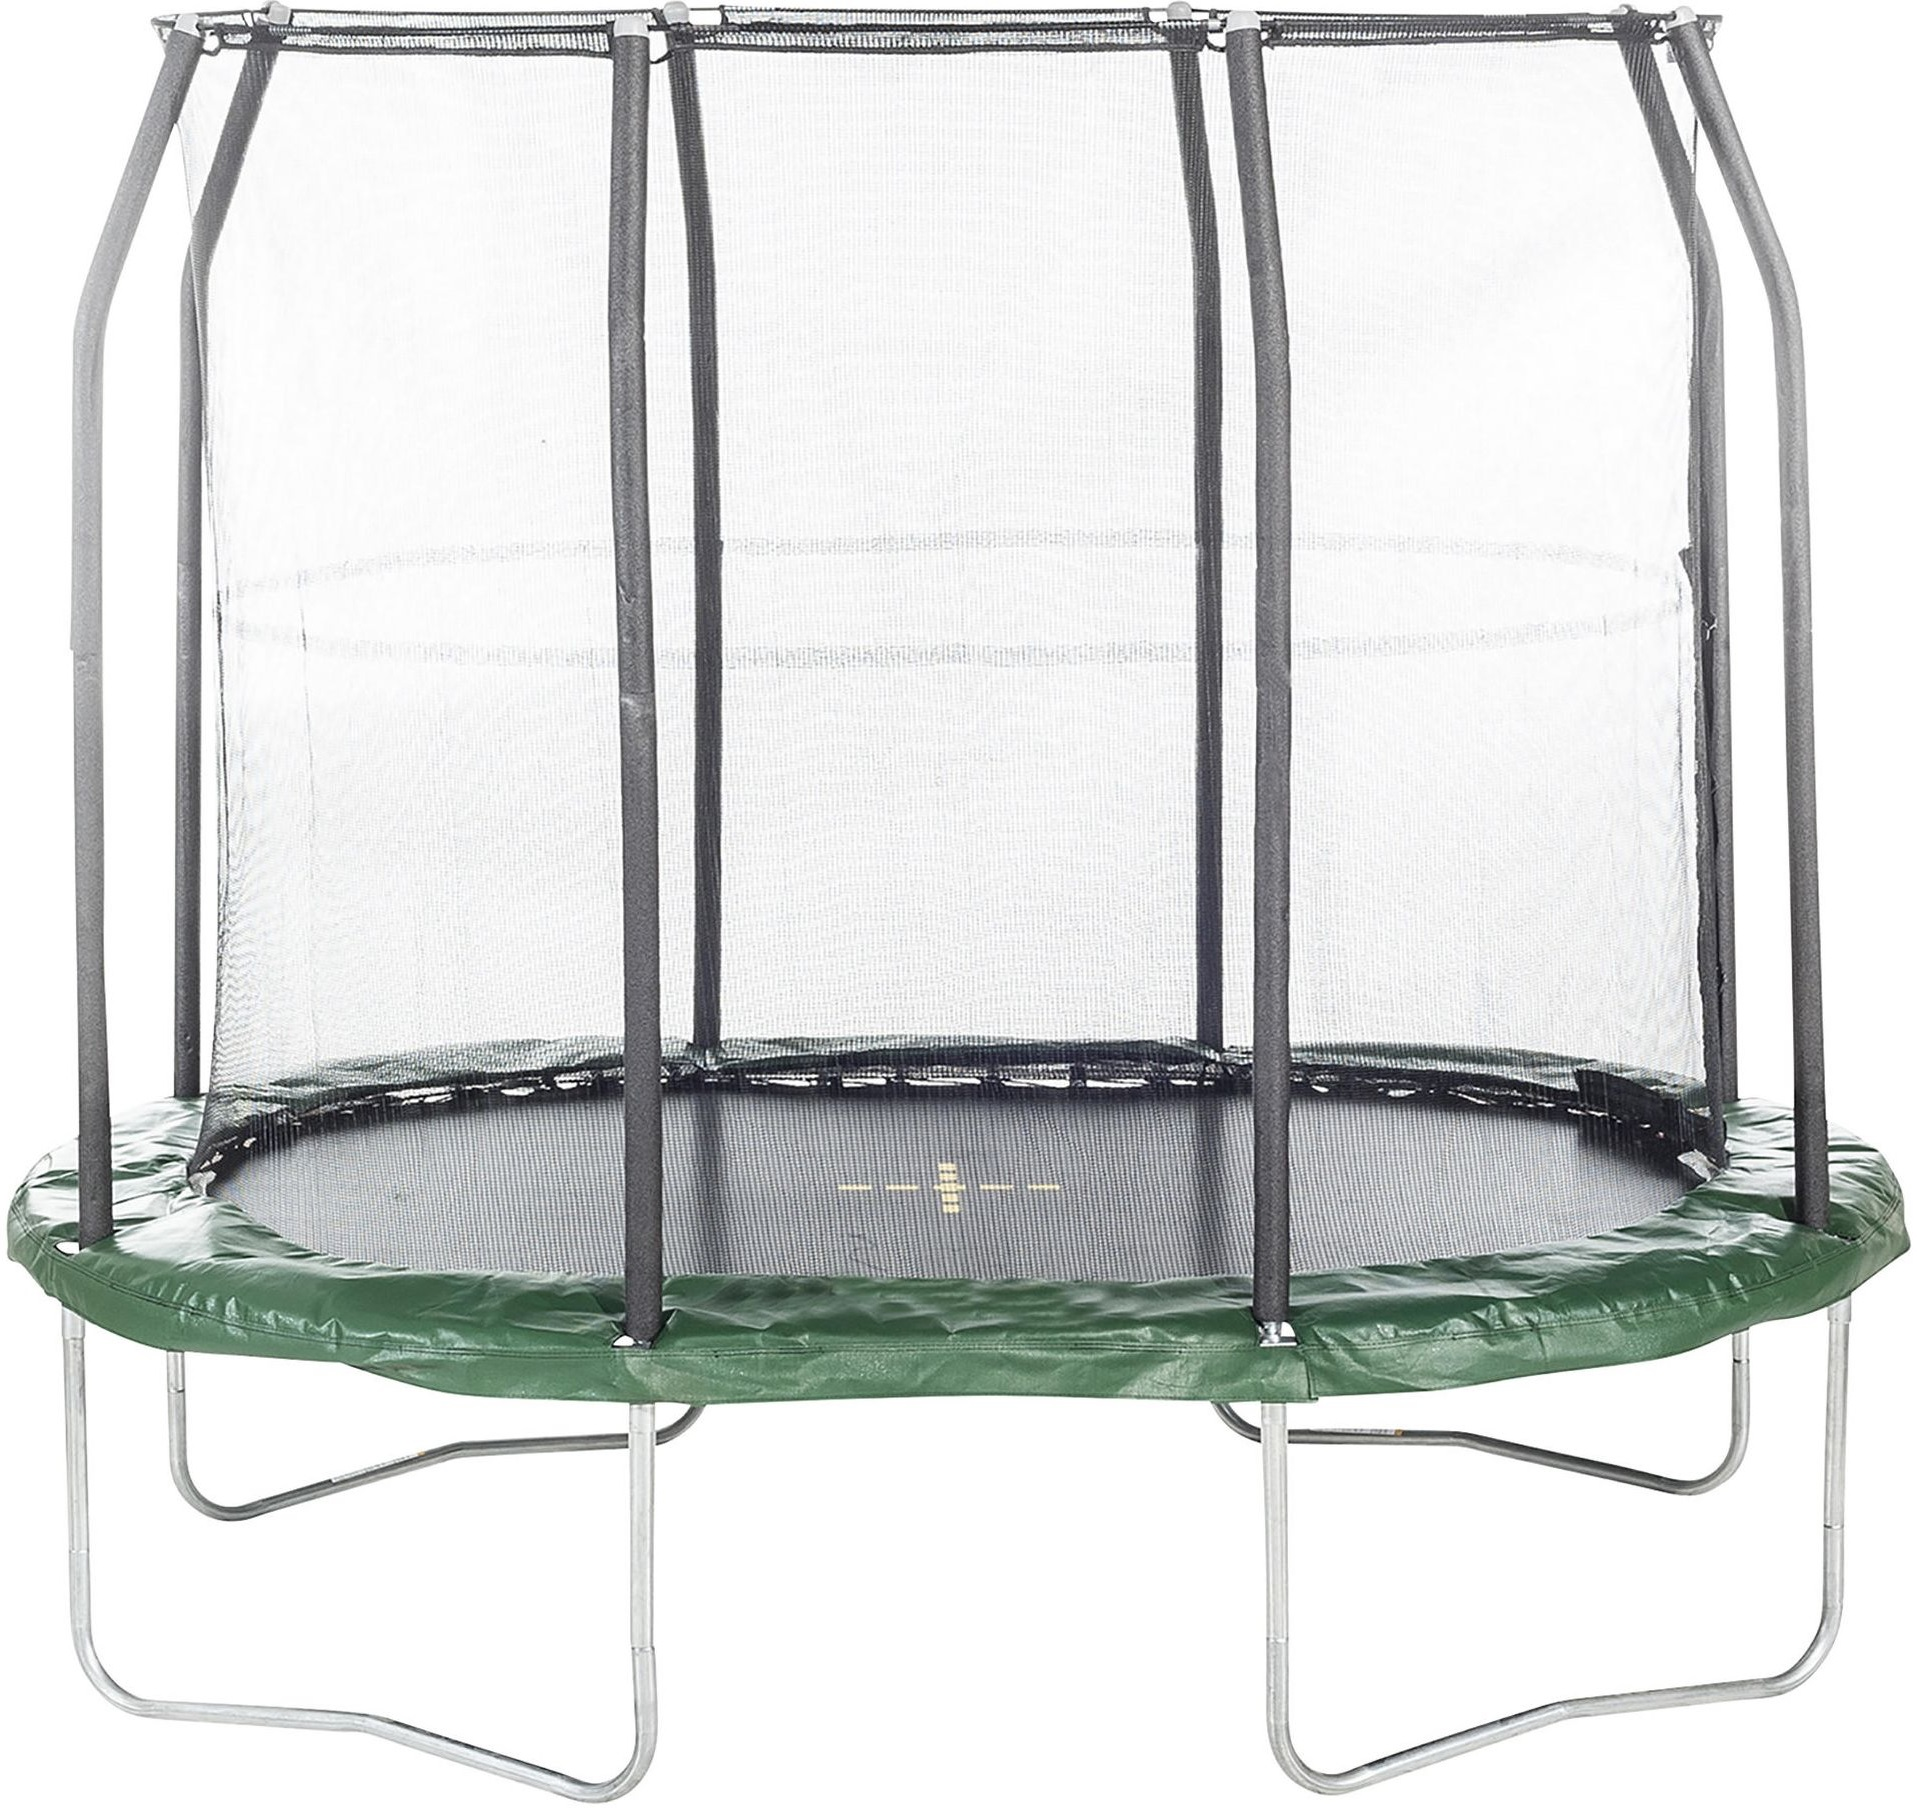 NEW JumpKing 7ft X 10ft Oval Trampoline With Safety Net